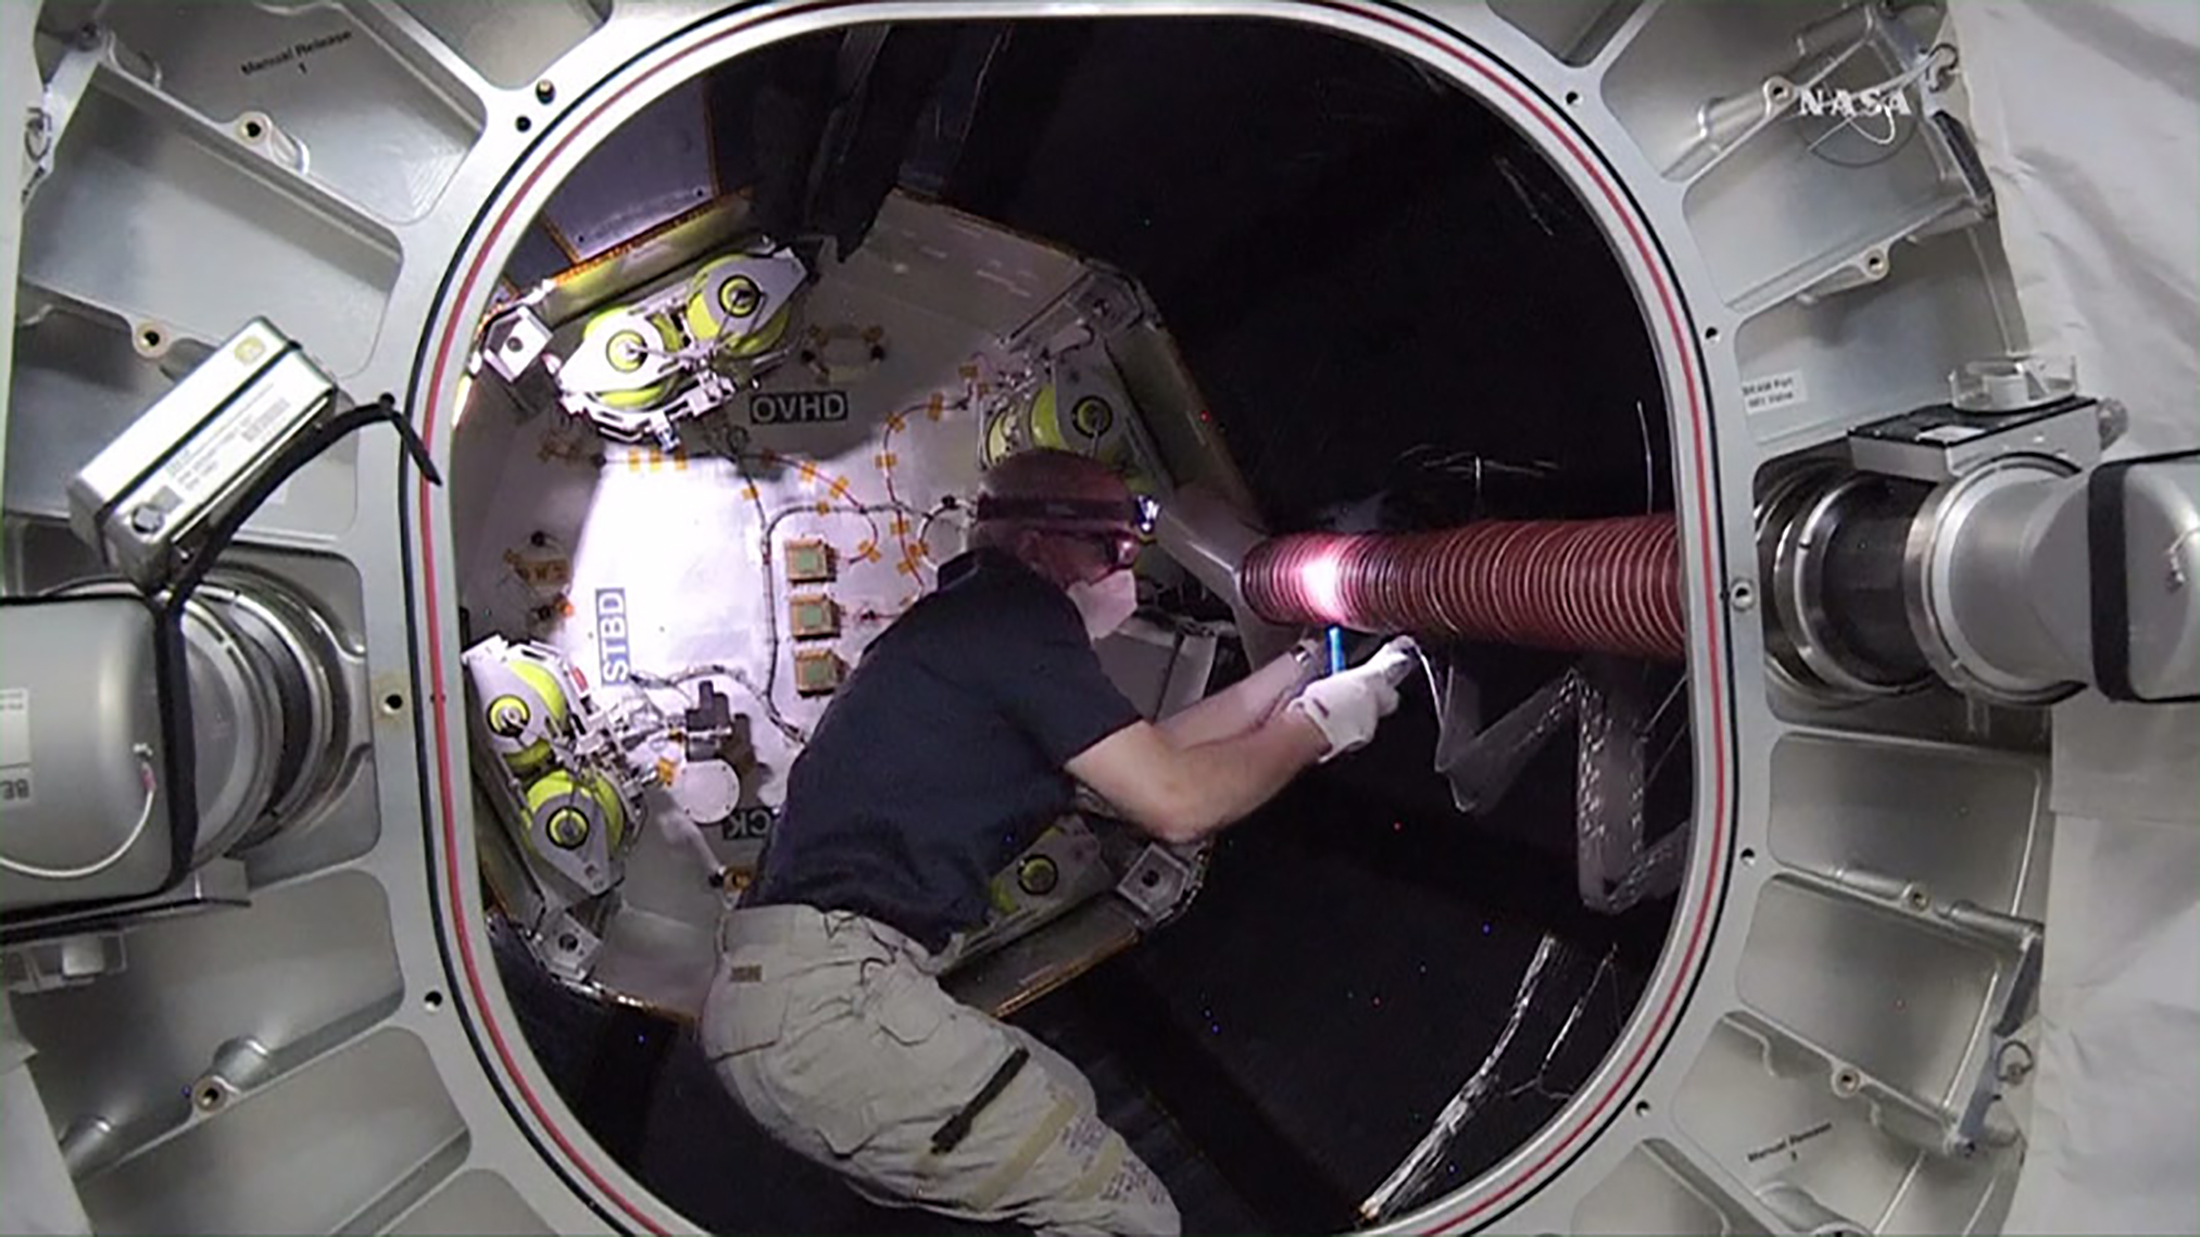 NASA astronaut Jeff Williams works inside the Bigelow Expandable Activity Module (BEAM) attached to the International Space Station in this still image from NASA TV taken June 6, 2016.  NASA/Handout via Reuters  THIS IMAGE HAS BEEN SUPPLIED BY A THIRD PARTY. IT IS DISTRIBUTED, EXACTLY AS RECEIVED BY REUTERS, AS A SERVICE TO CLIENTS. FOR EDITORIAL USE ONLY. NOT FOR SALE FOR MARKETING OR ADVERTISING CAMPAIGNS - RTSGAGK